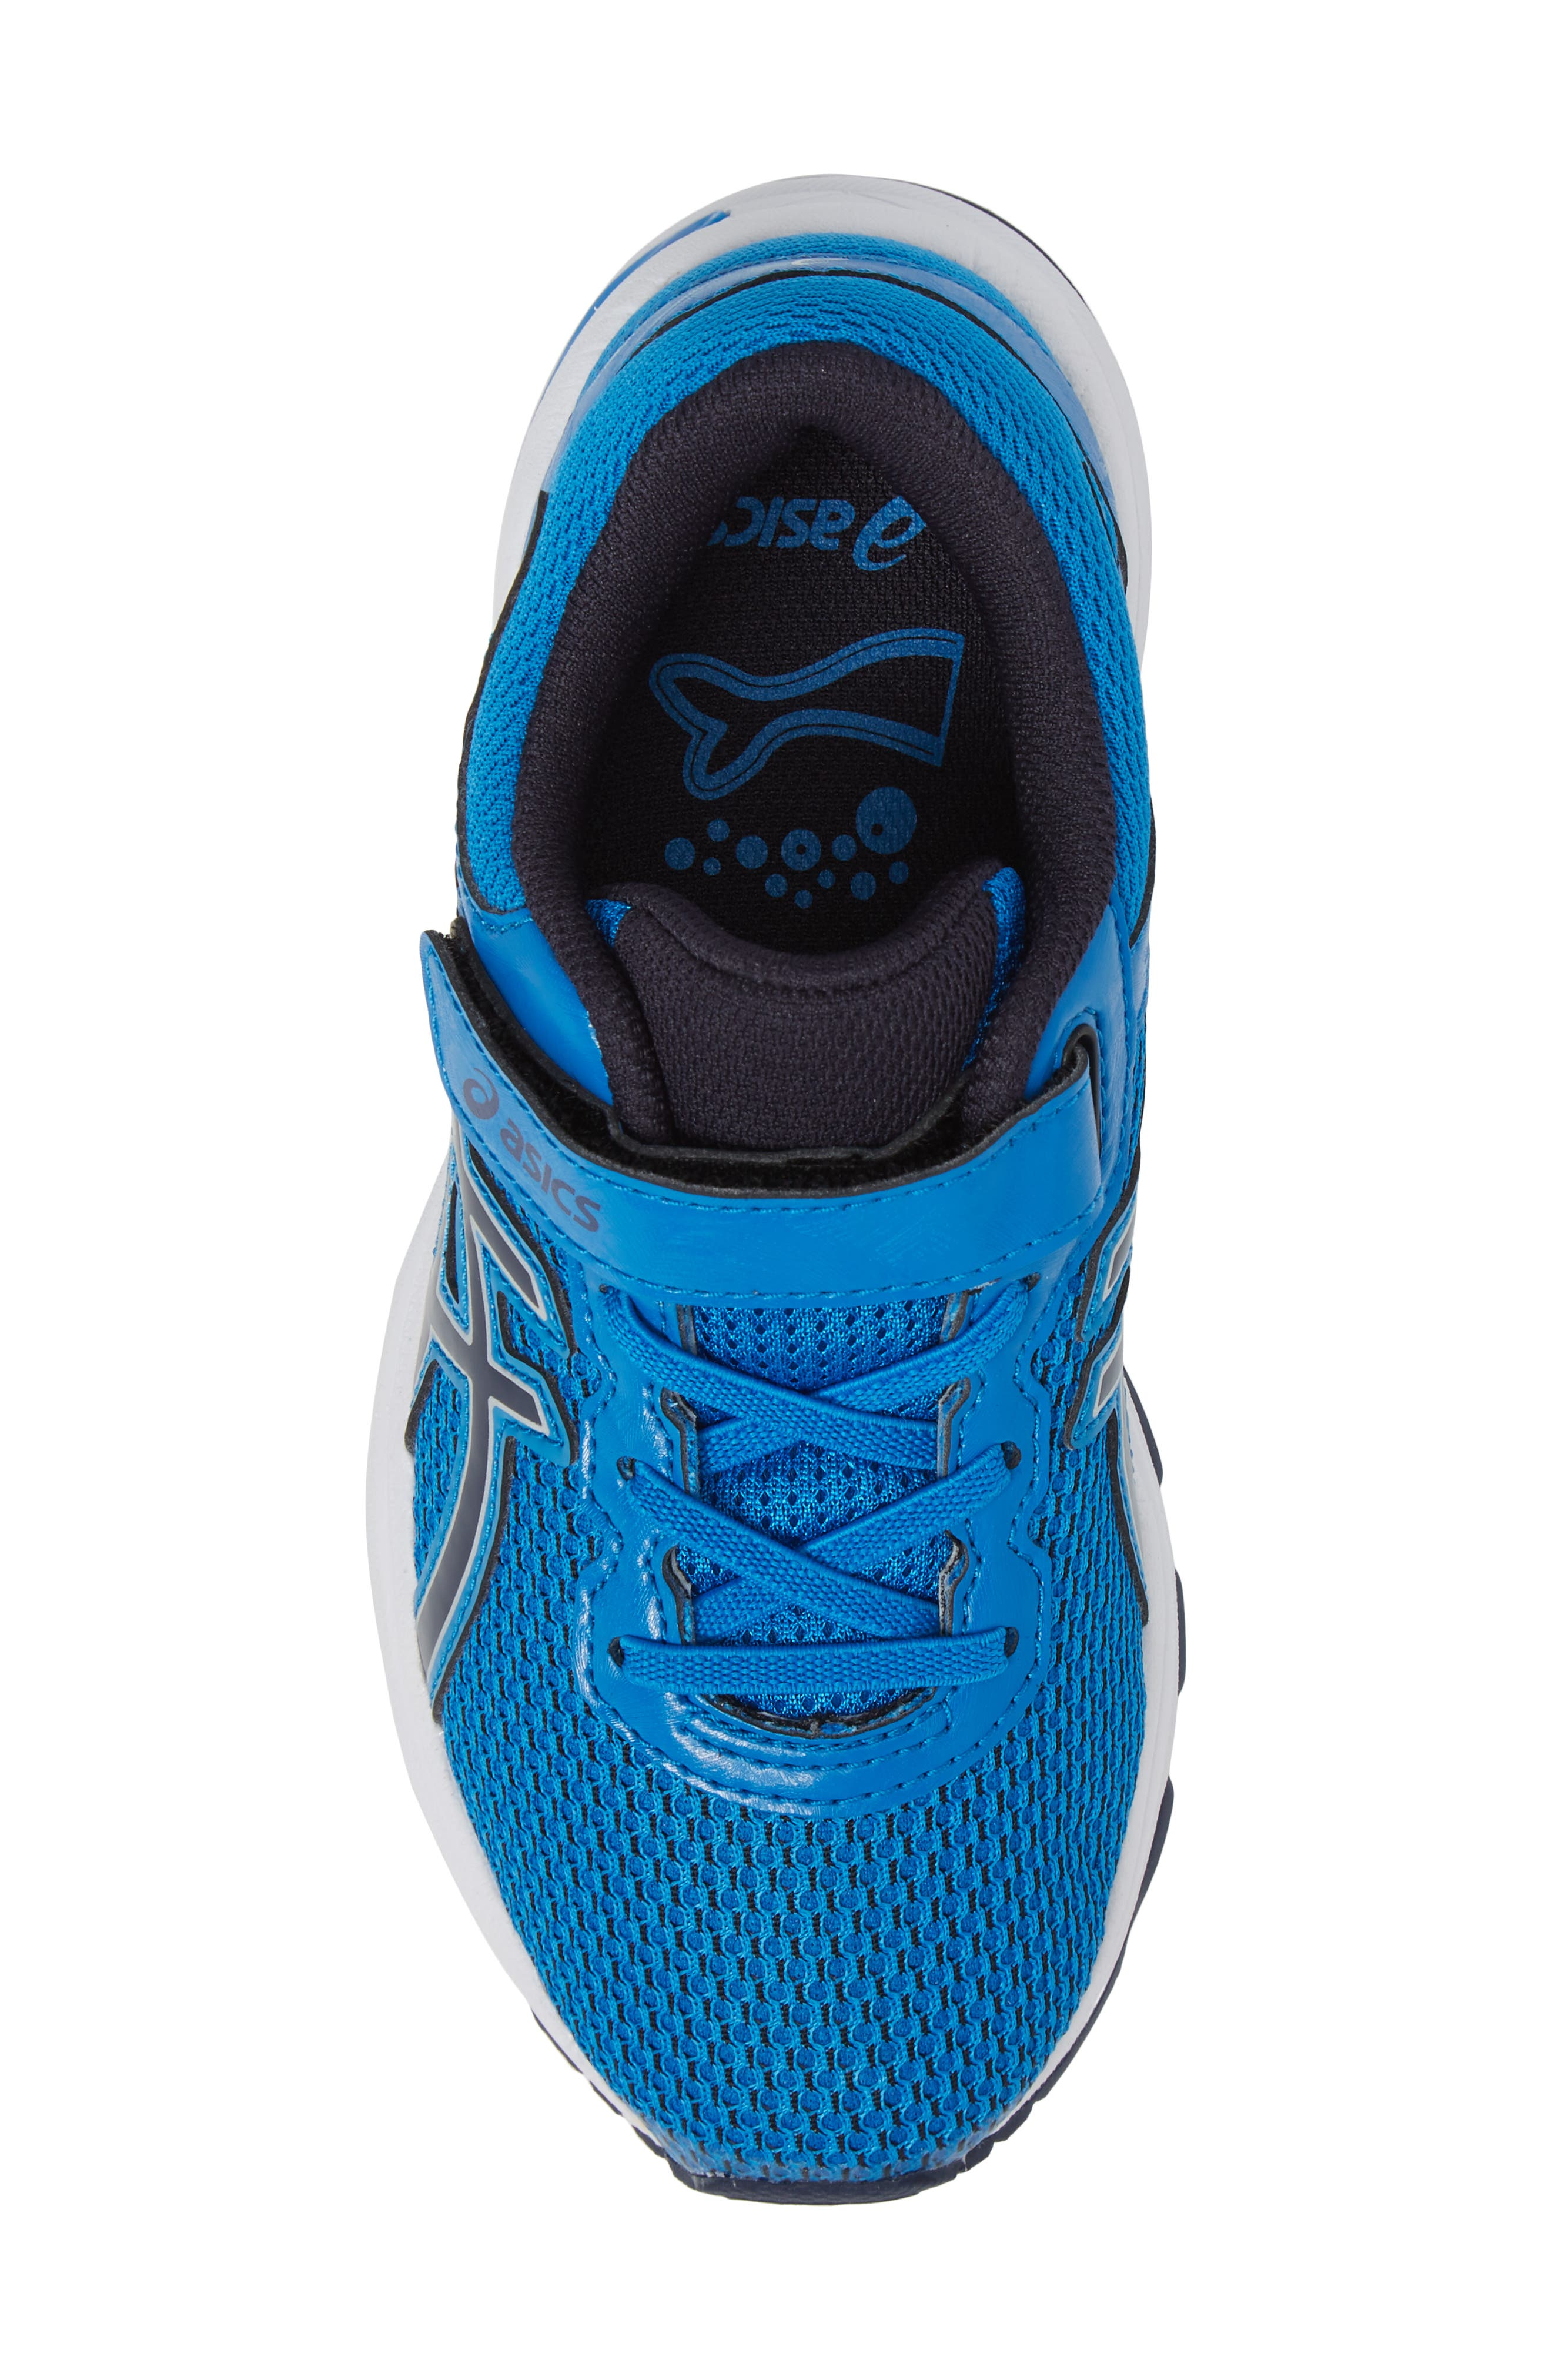 Asics GT-1000<sup>™</sup> 6 PS Sneaker,                             Alternate thumbnail 5, color,                             Blue/ Peacock